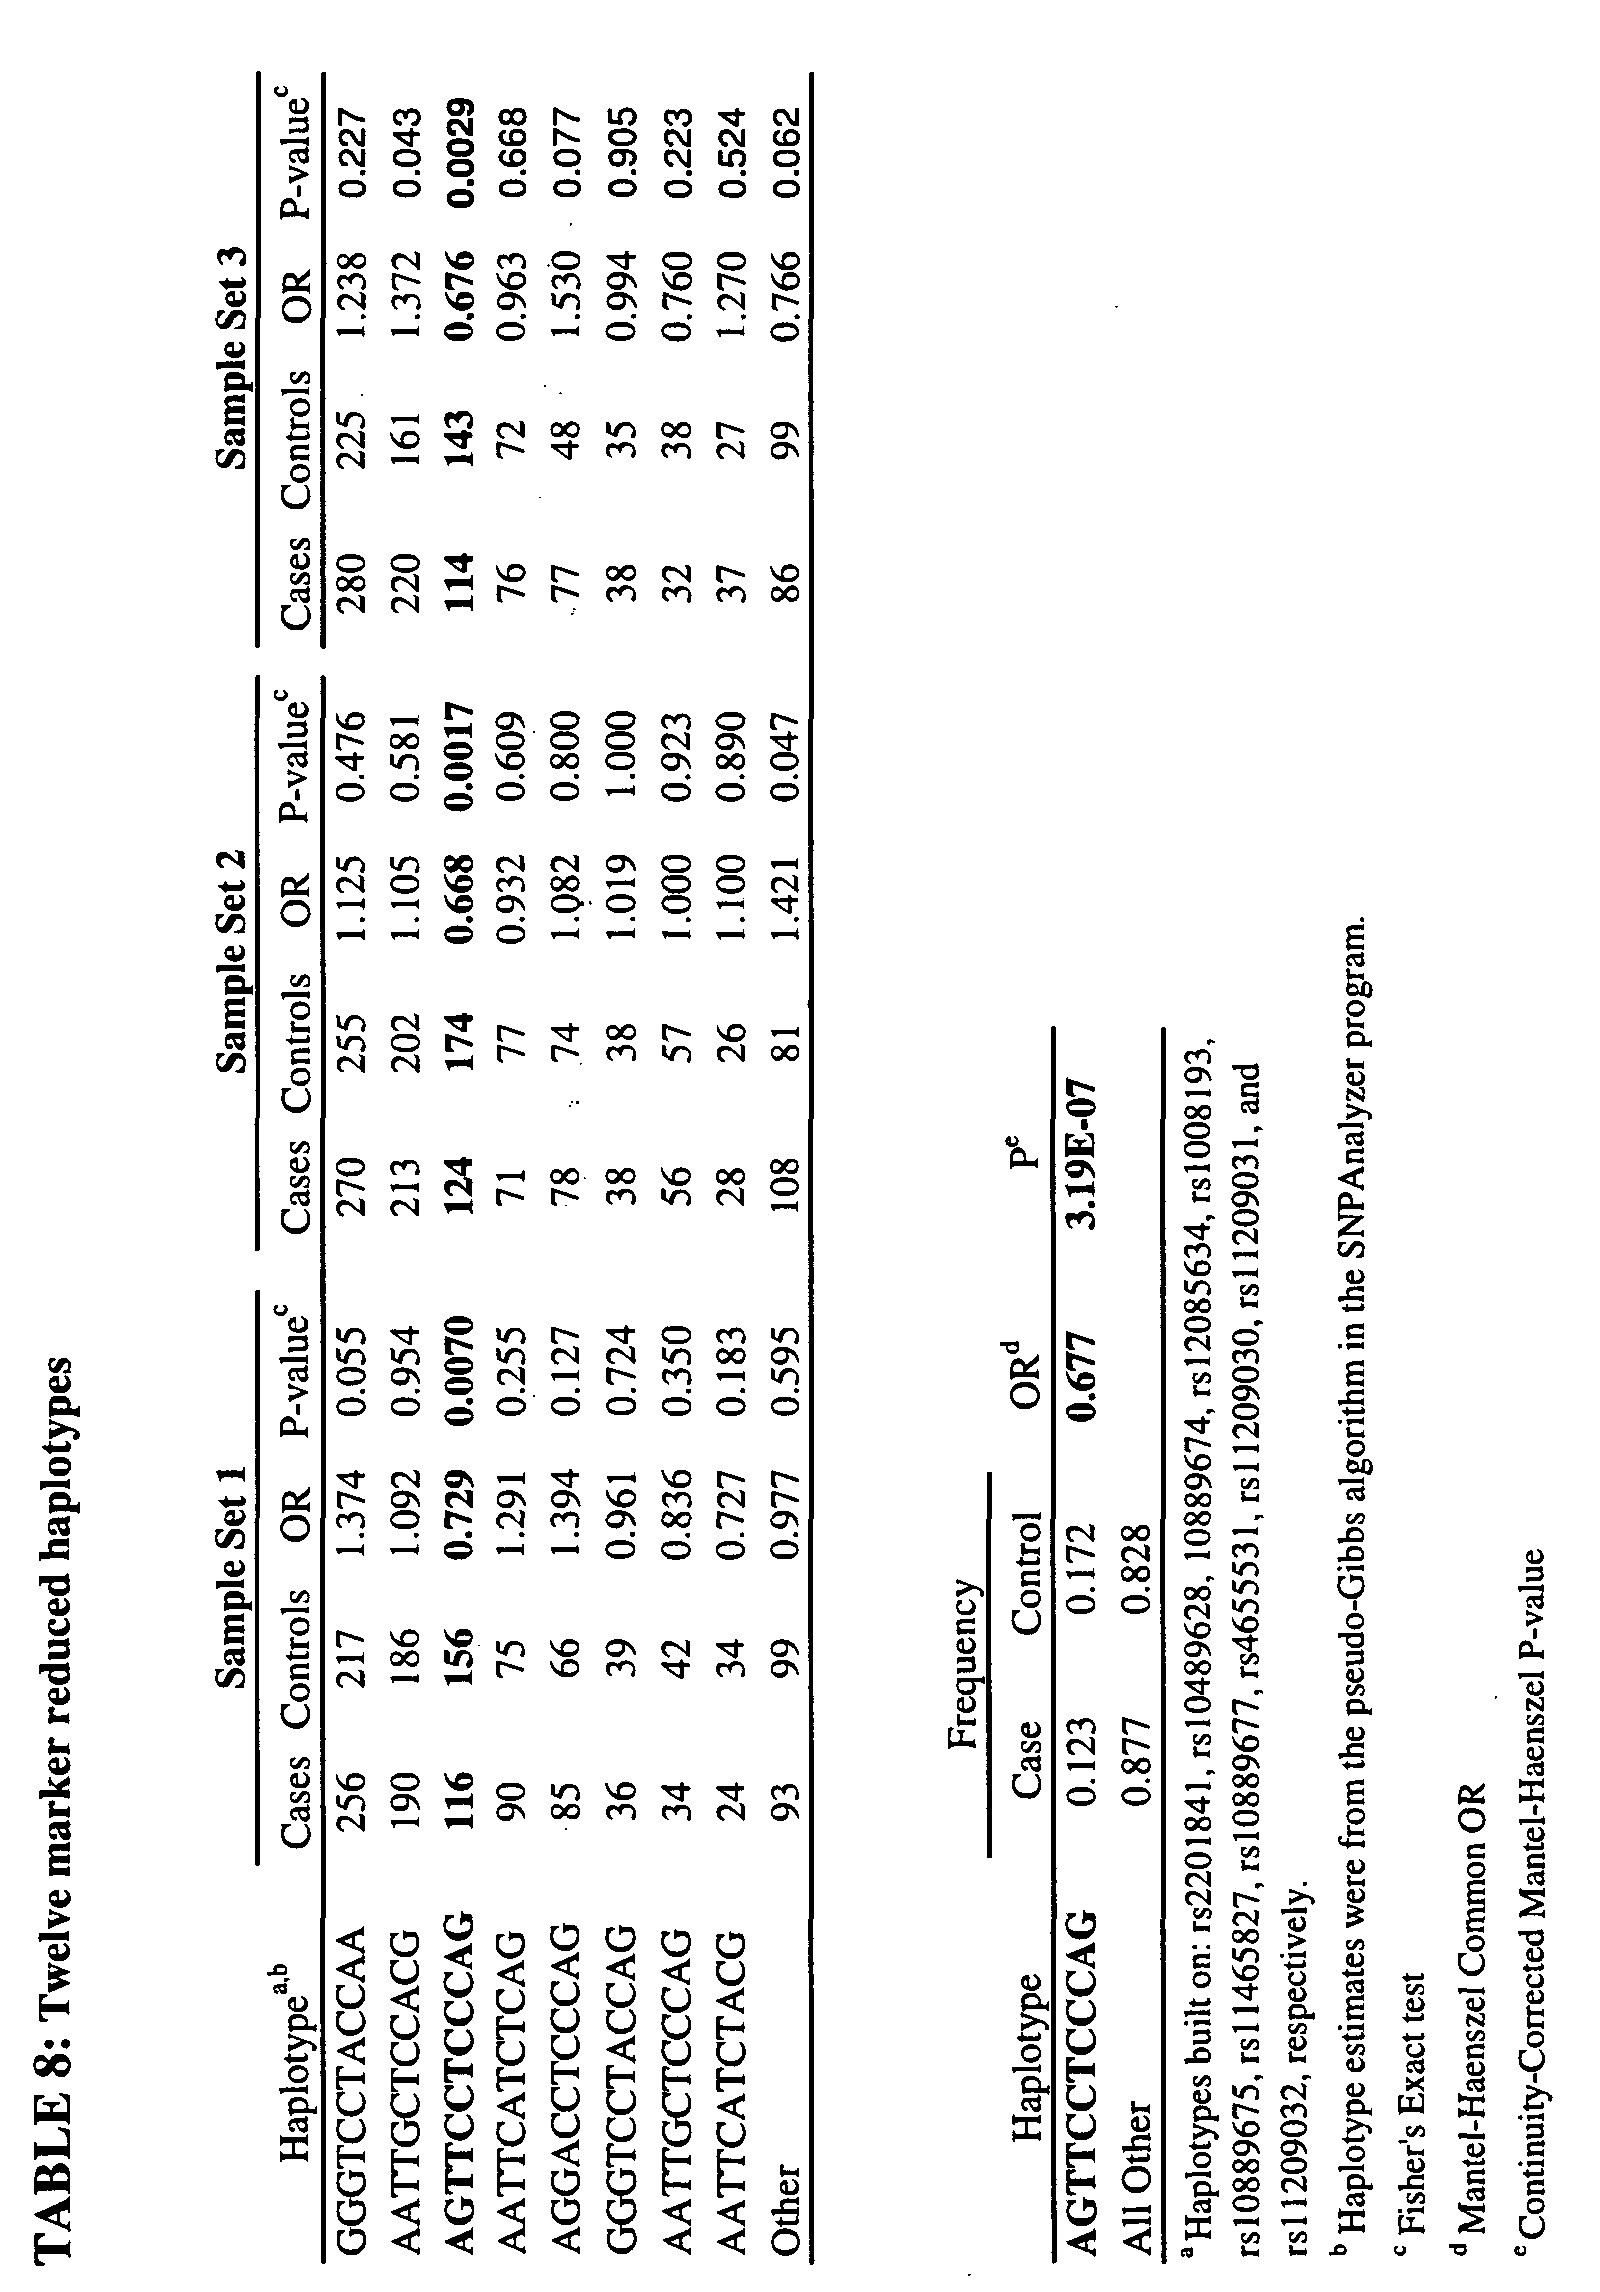 WO2010002891A1 - Genetic polymorphisms associated with autoinflammatory  diseases 279f80db1a51c